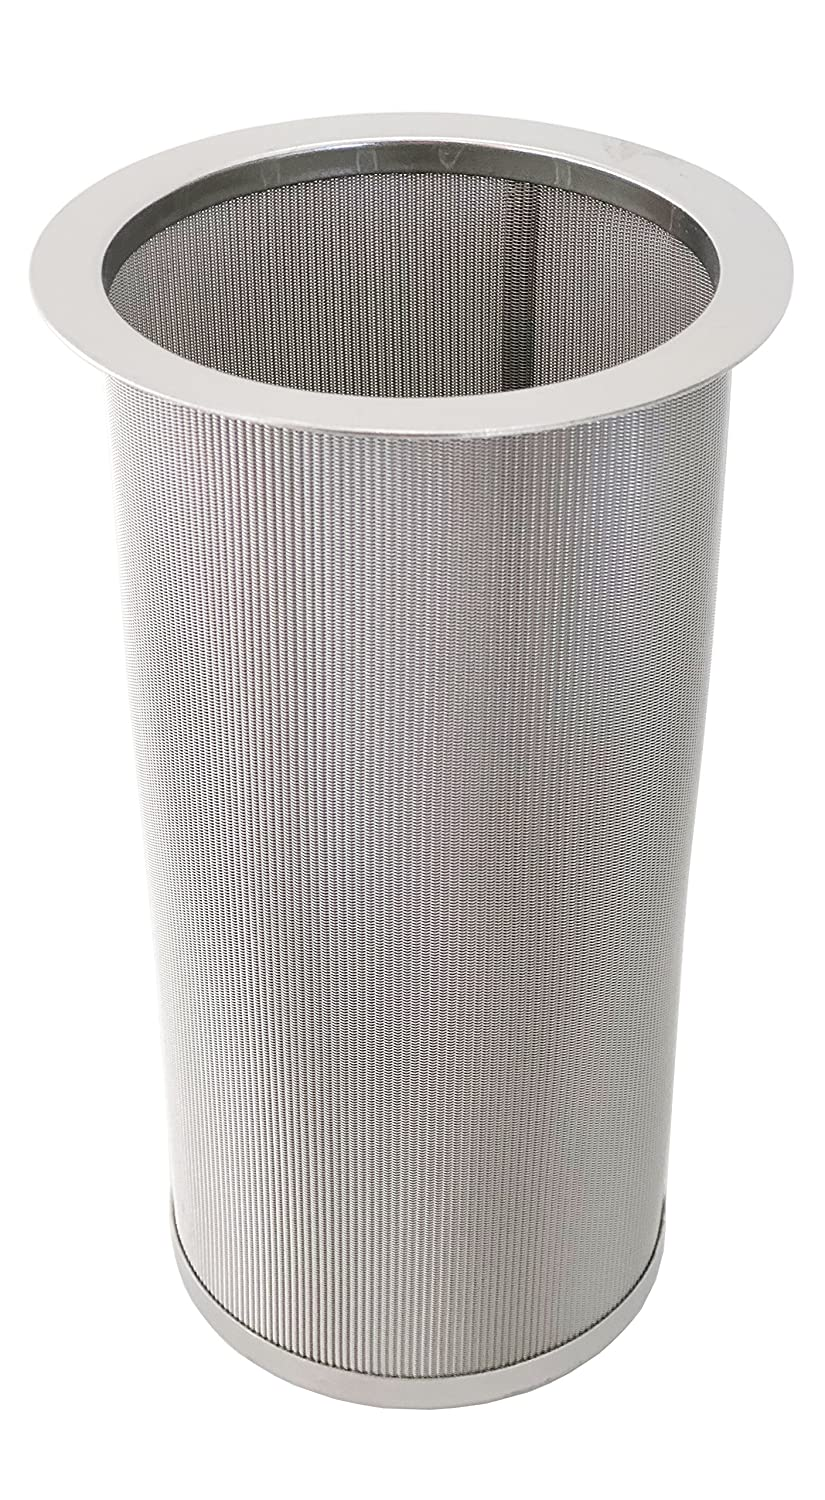 iAesthete Cold Brew Coffee Filter For Wide Mouth Mason Jar, Food Grade 304 Stainless Steel, Ultra Fine Mesh, Tea and Fruit infuser, Iced Coffee Maker, Iced Tea Maker, Cold Brew Coffee Maker